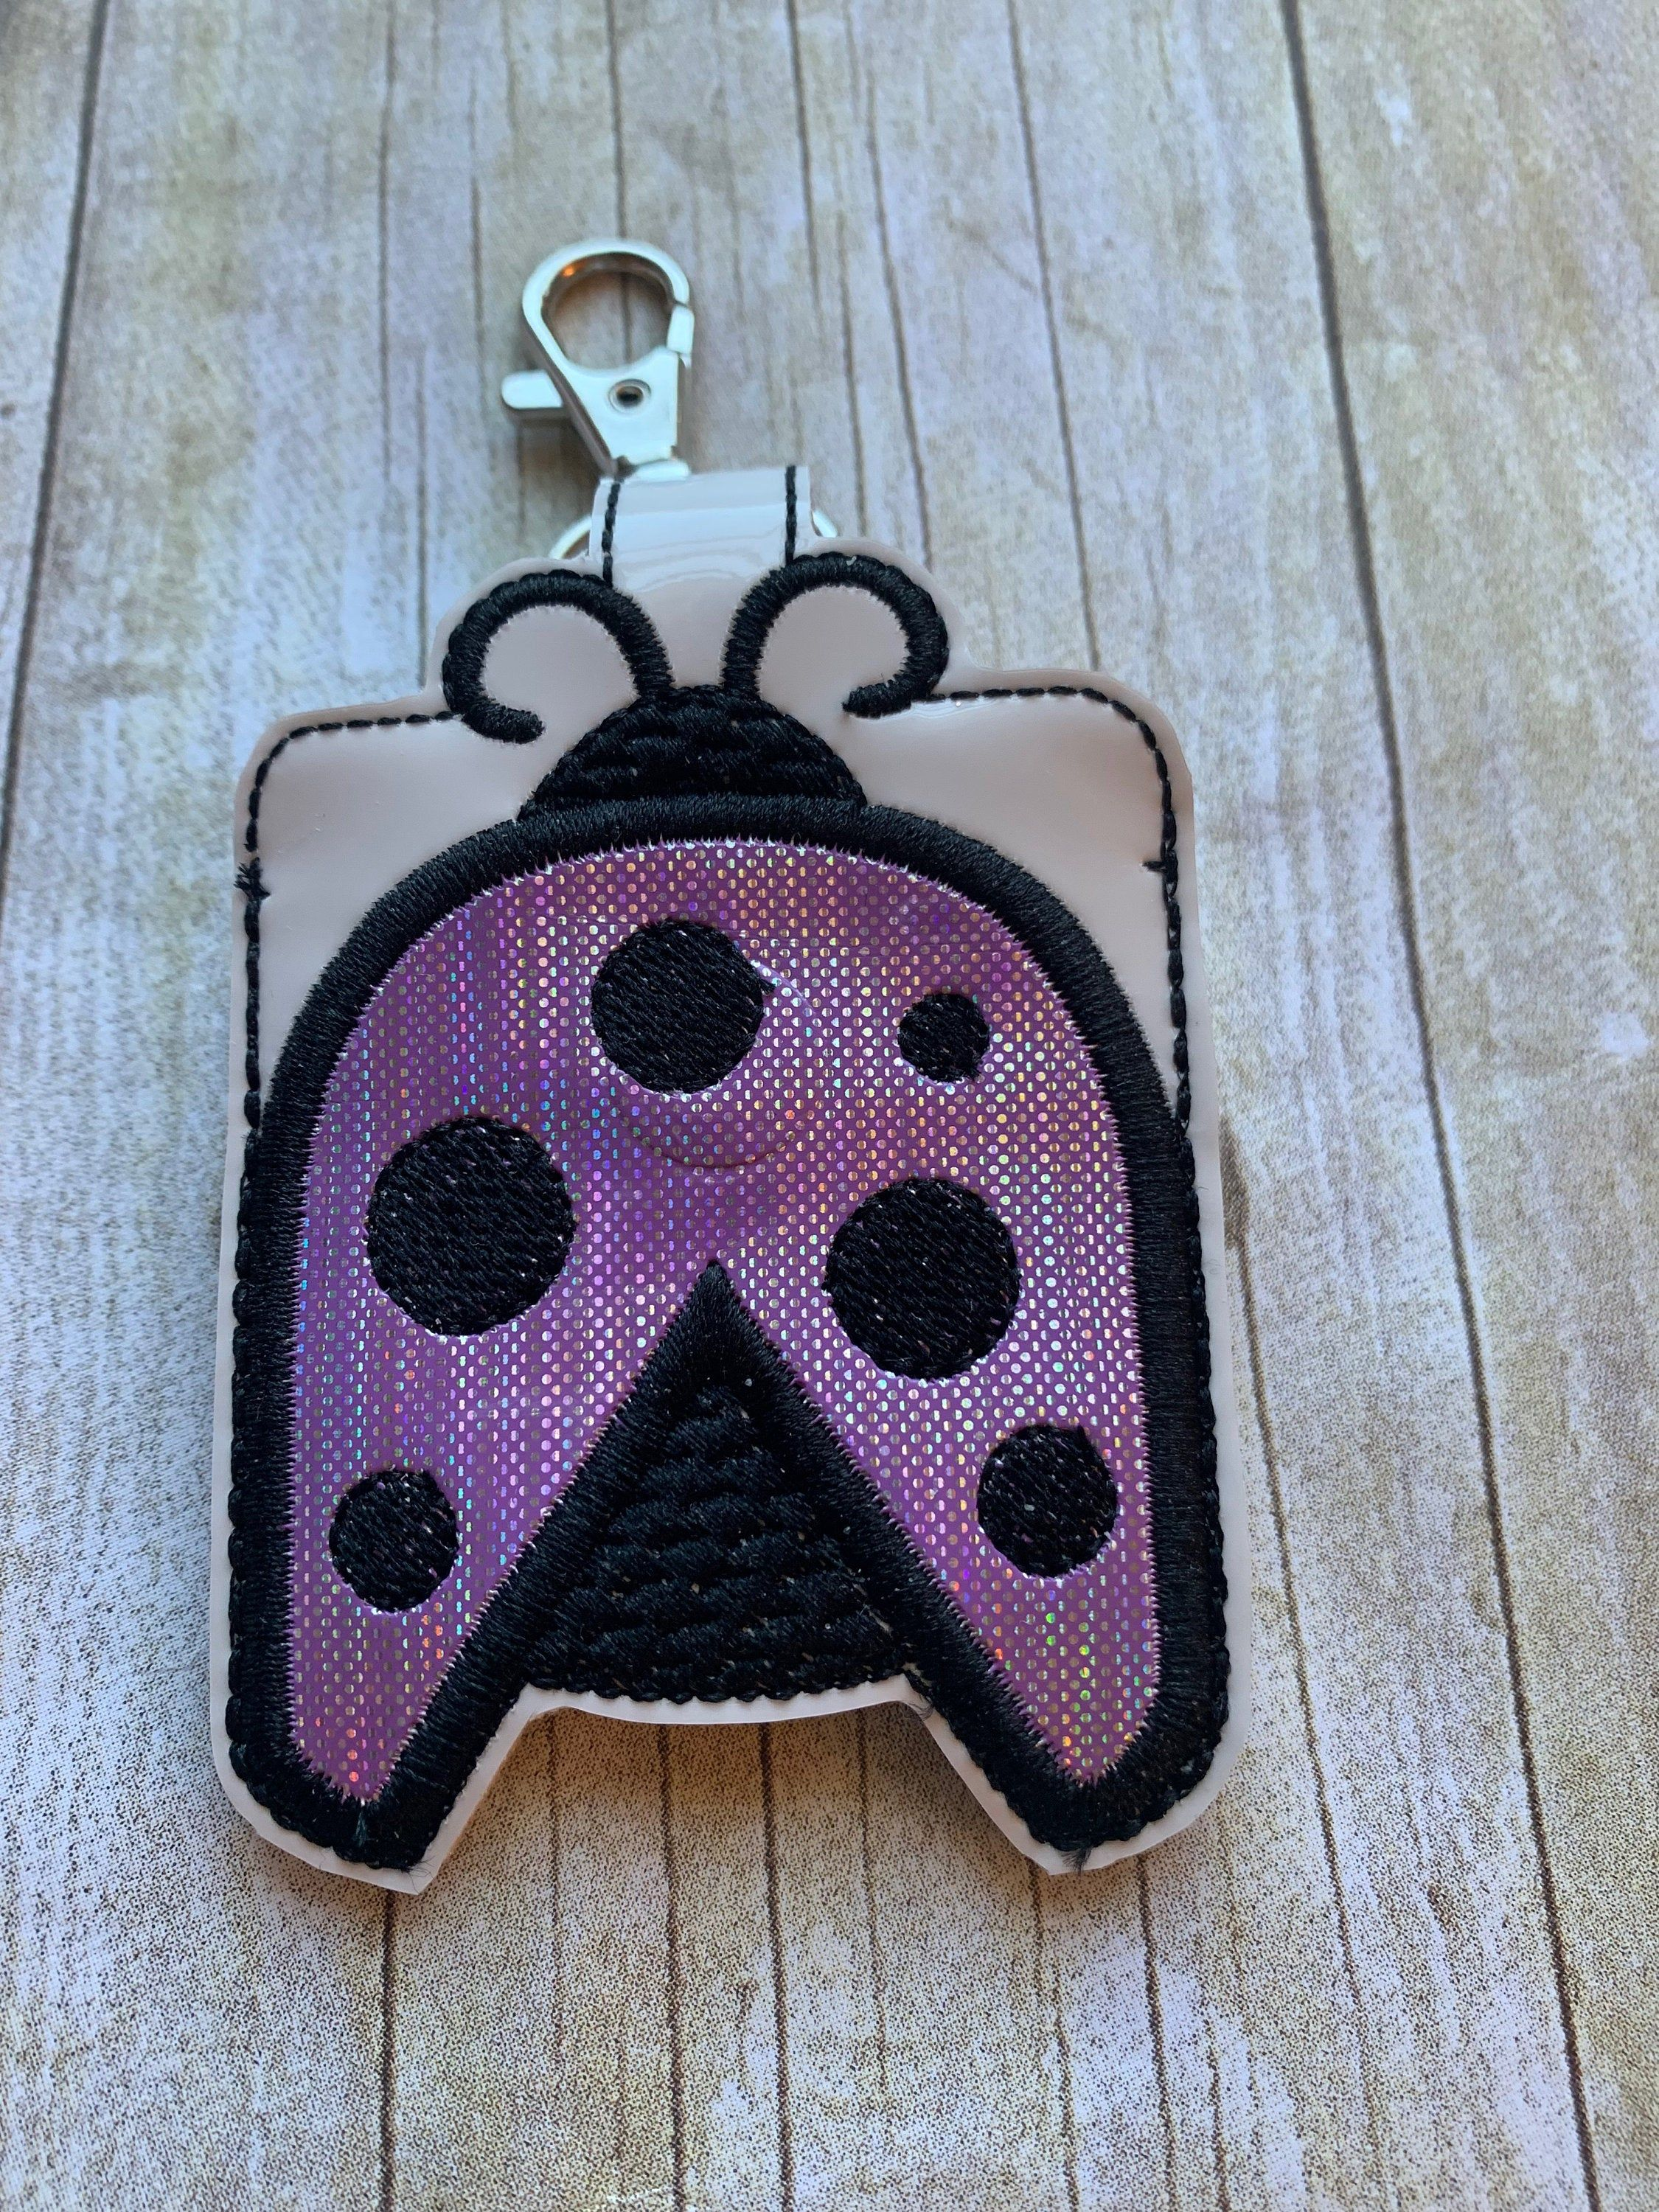 Lady Bug Hand Sanitizer Holder With Purple Glitter Vinyl Wings